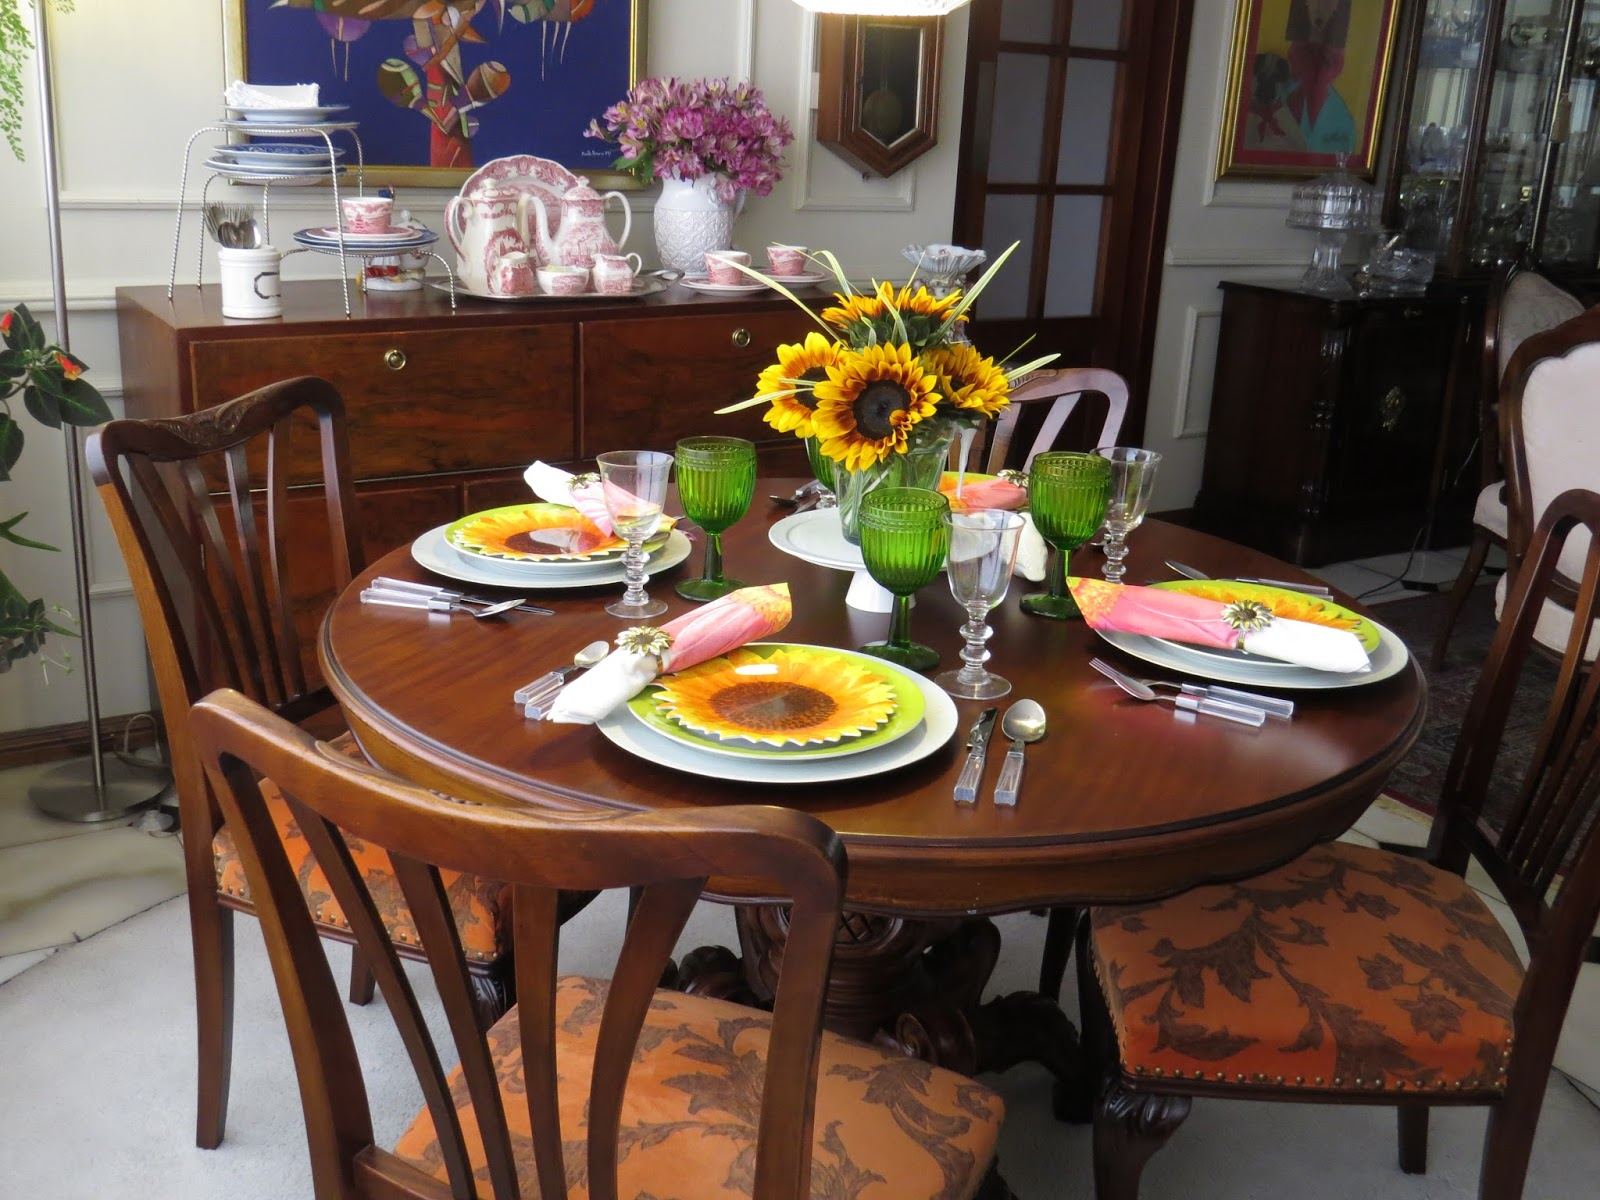 Fabby 39 s living sunflowers for a father 39 s day summer table Simple table setting for lunch